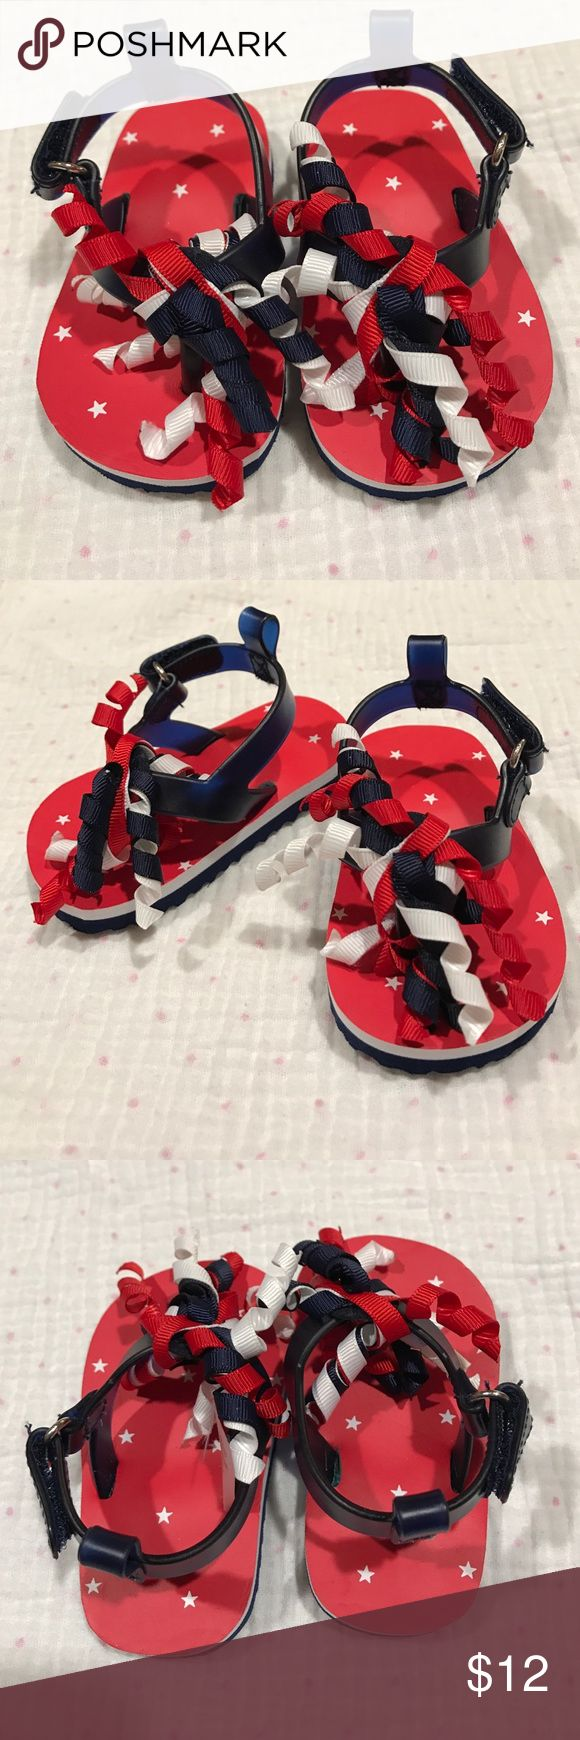 4th of July Carter's Baby Shoes Size 3-6 months 4th of July, red white & blue Carter's Child of Mine Baby Shoes. Worn once! Carter's Shoes Baby & Walker